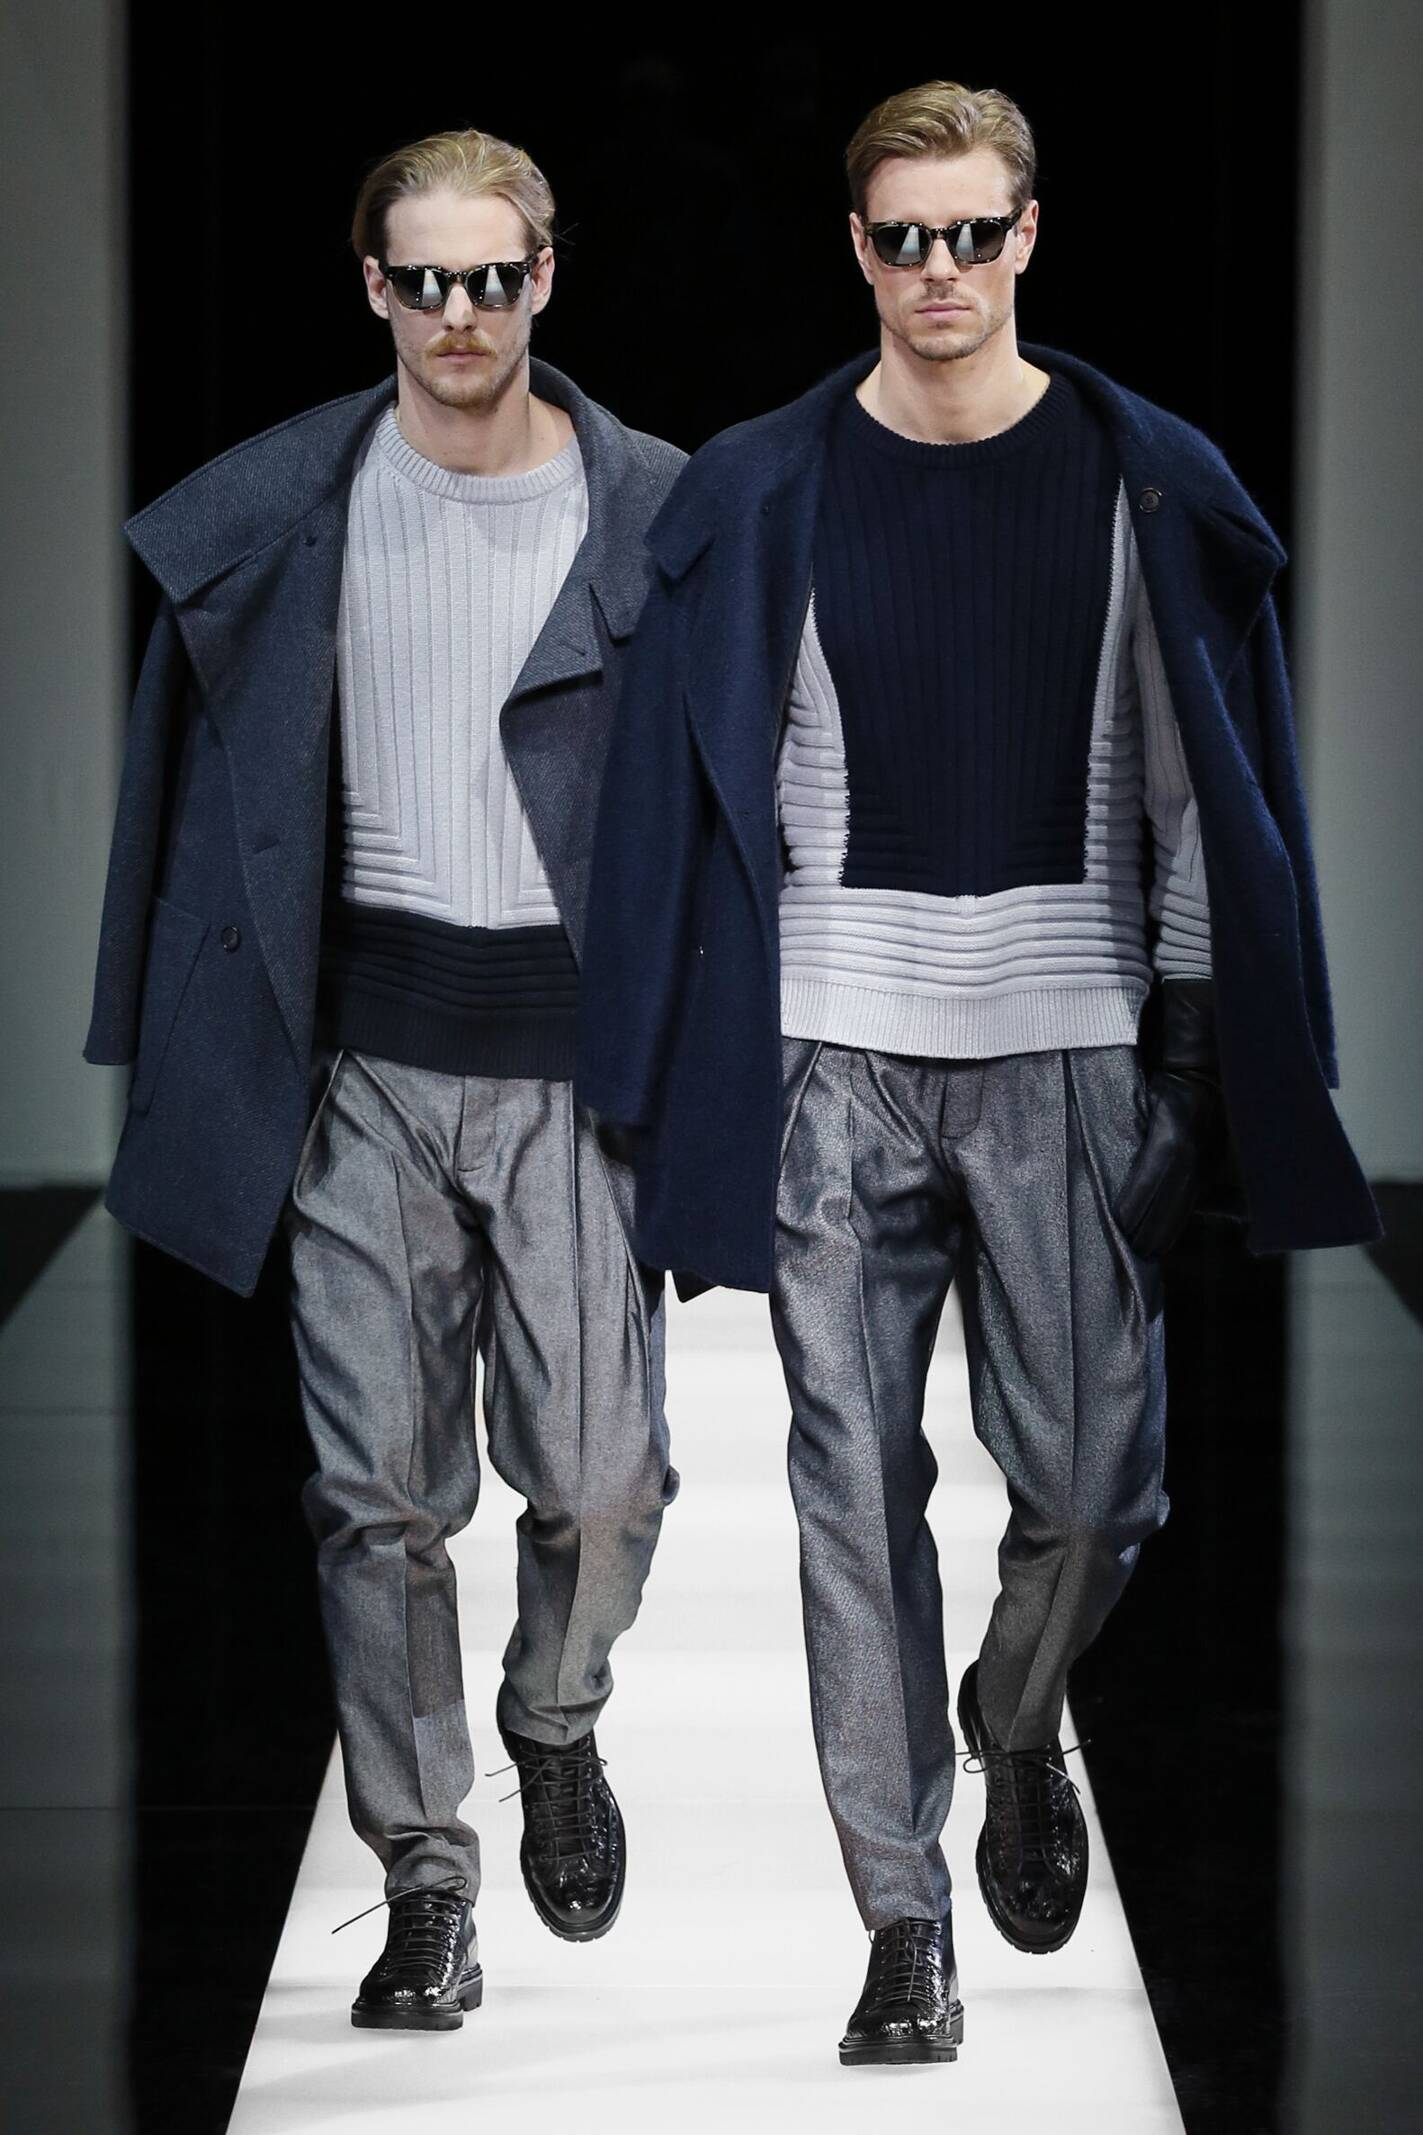 Winter 2015 Fashion Show Giorgio Armani Collection